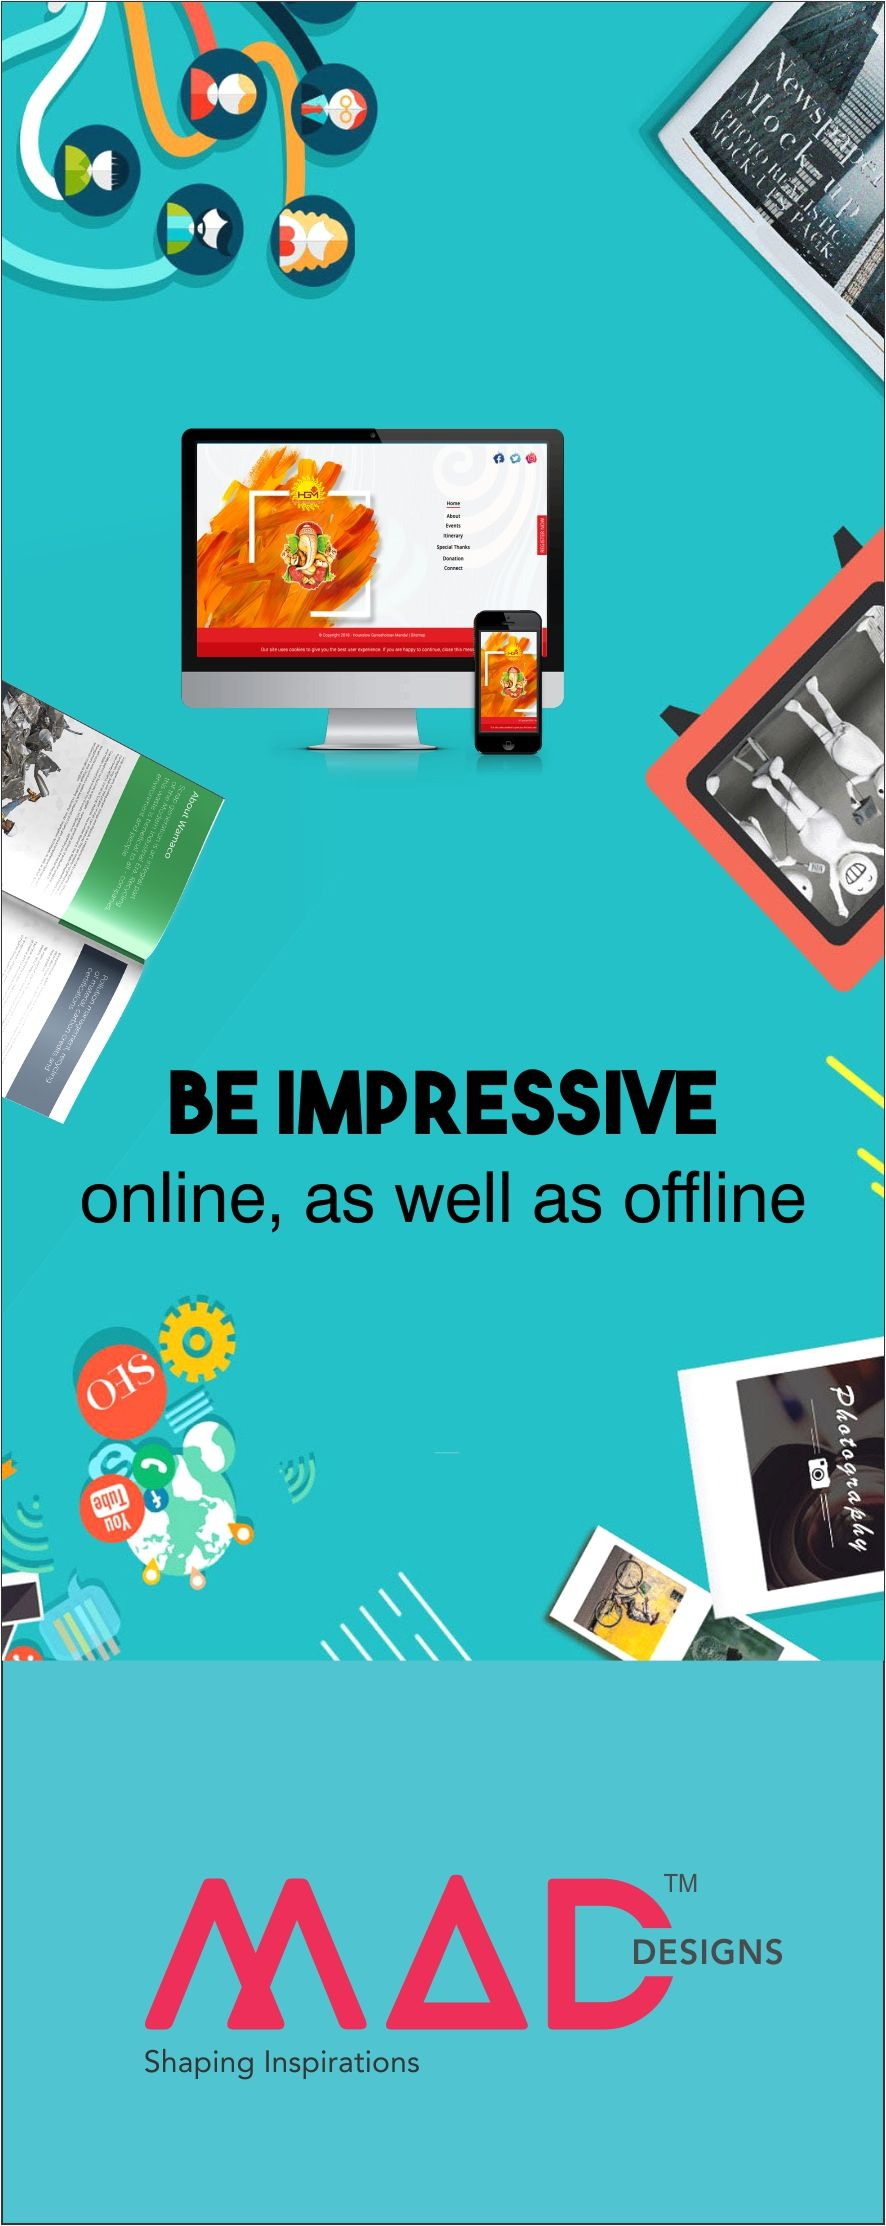 We help create impressive impressions, both online and